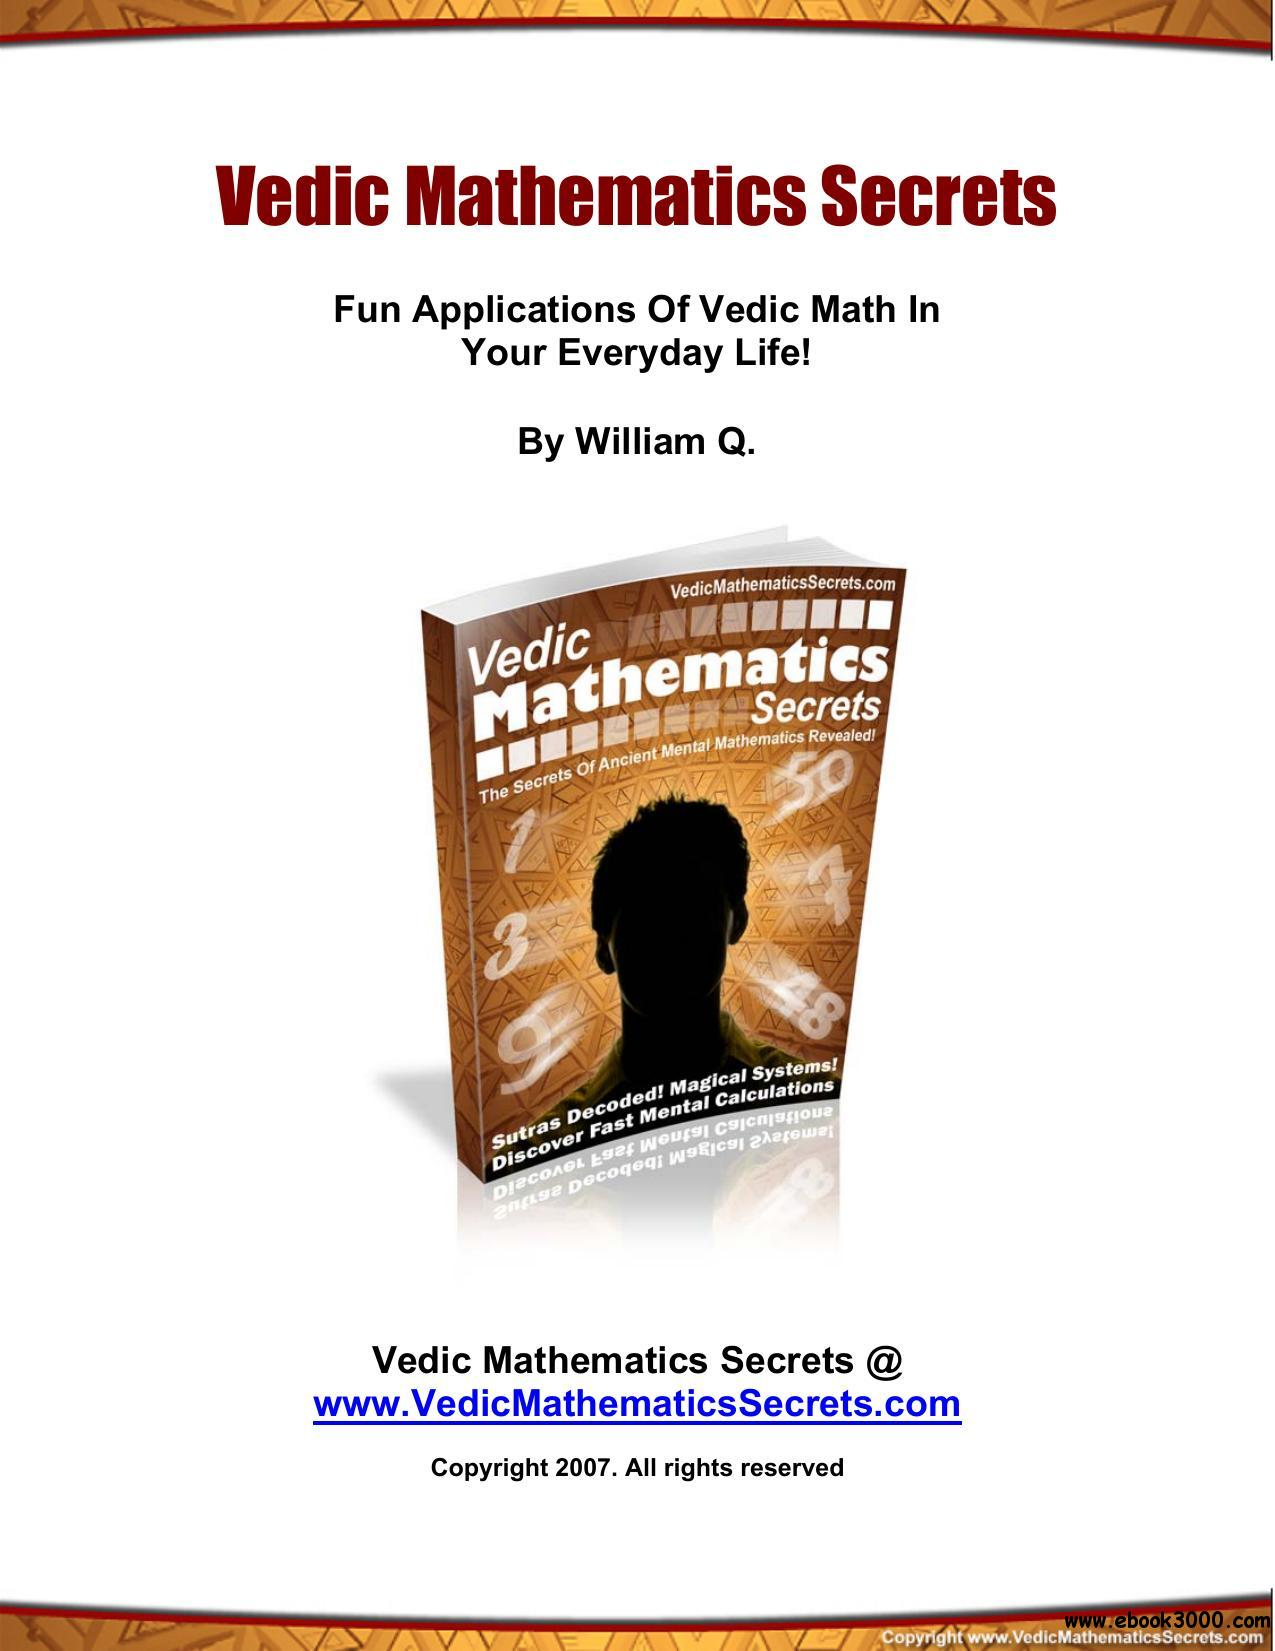 Vedic Mathematics Secrets: Fun Applications of Vedic Math In Your EveryDay Life!